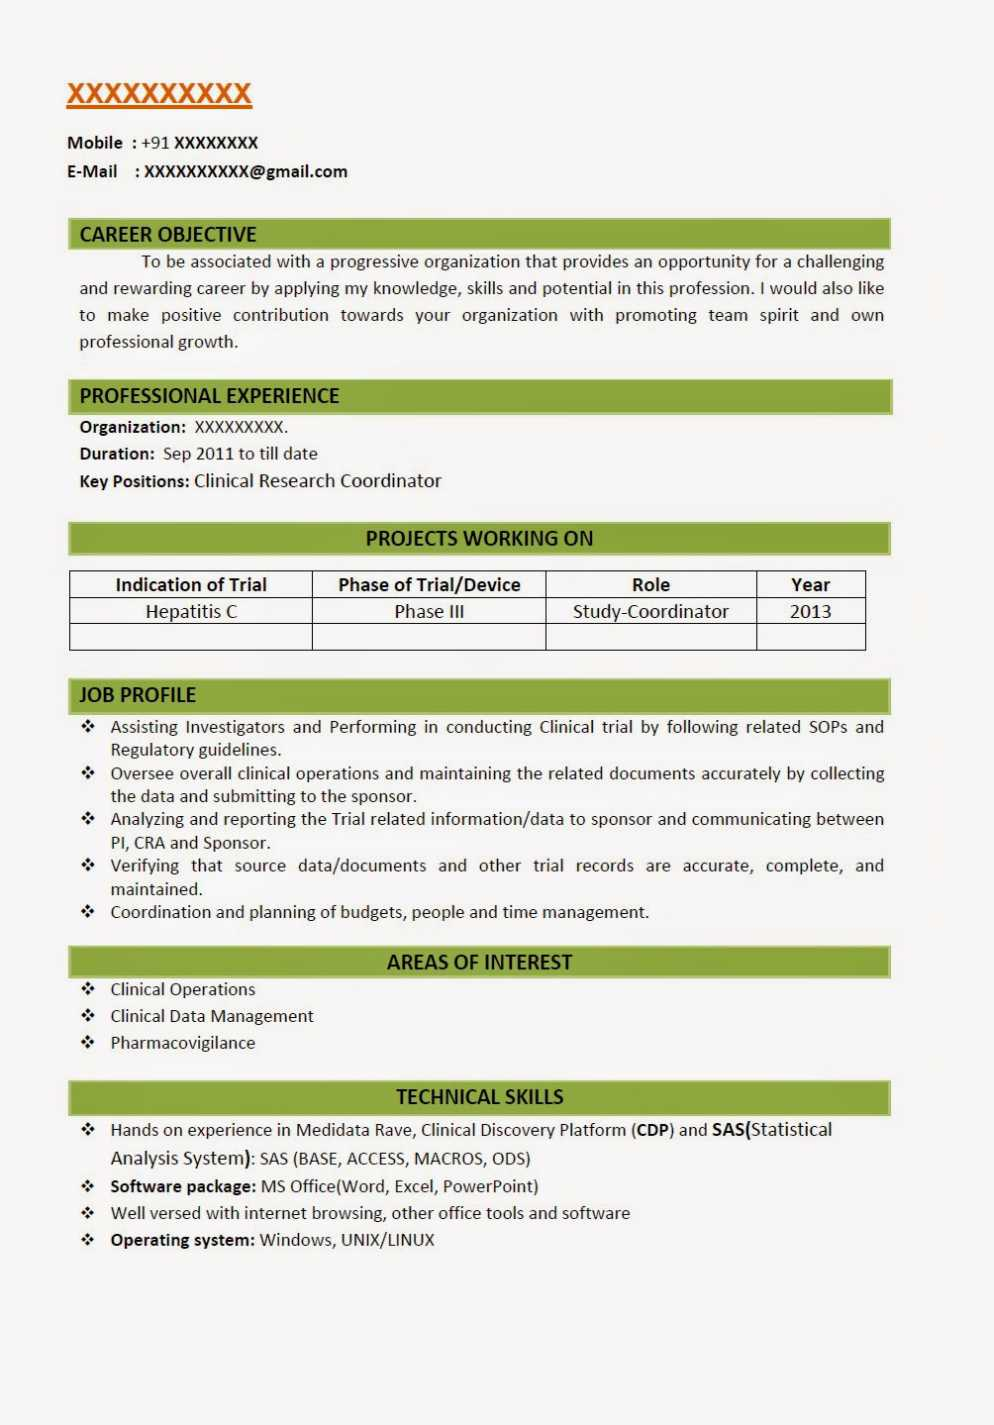 job application resume microbiology format for freshers clinical research uva template Resume Clinical Research Resume Format For Freshers